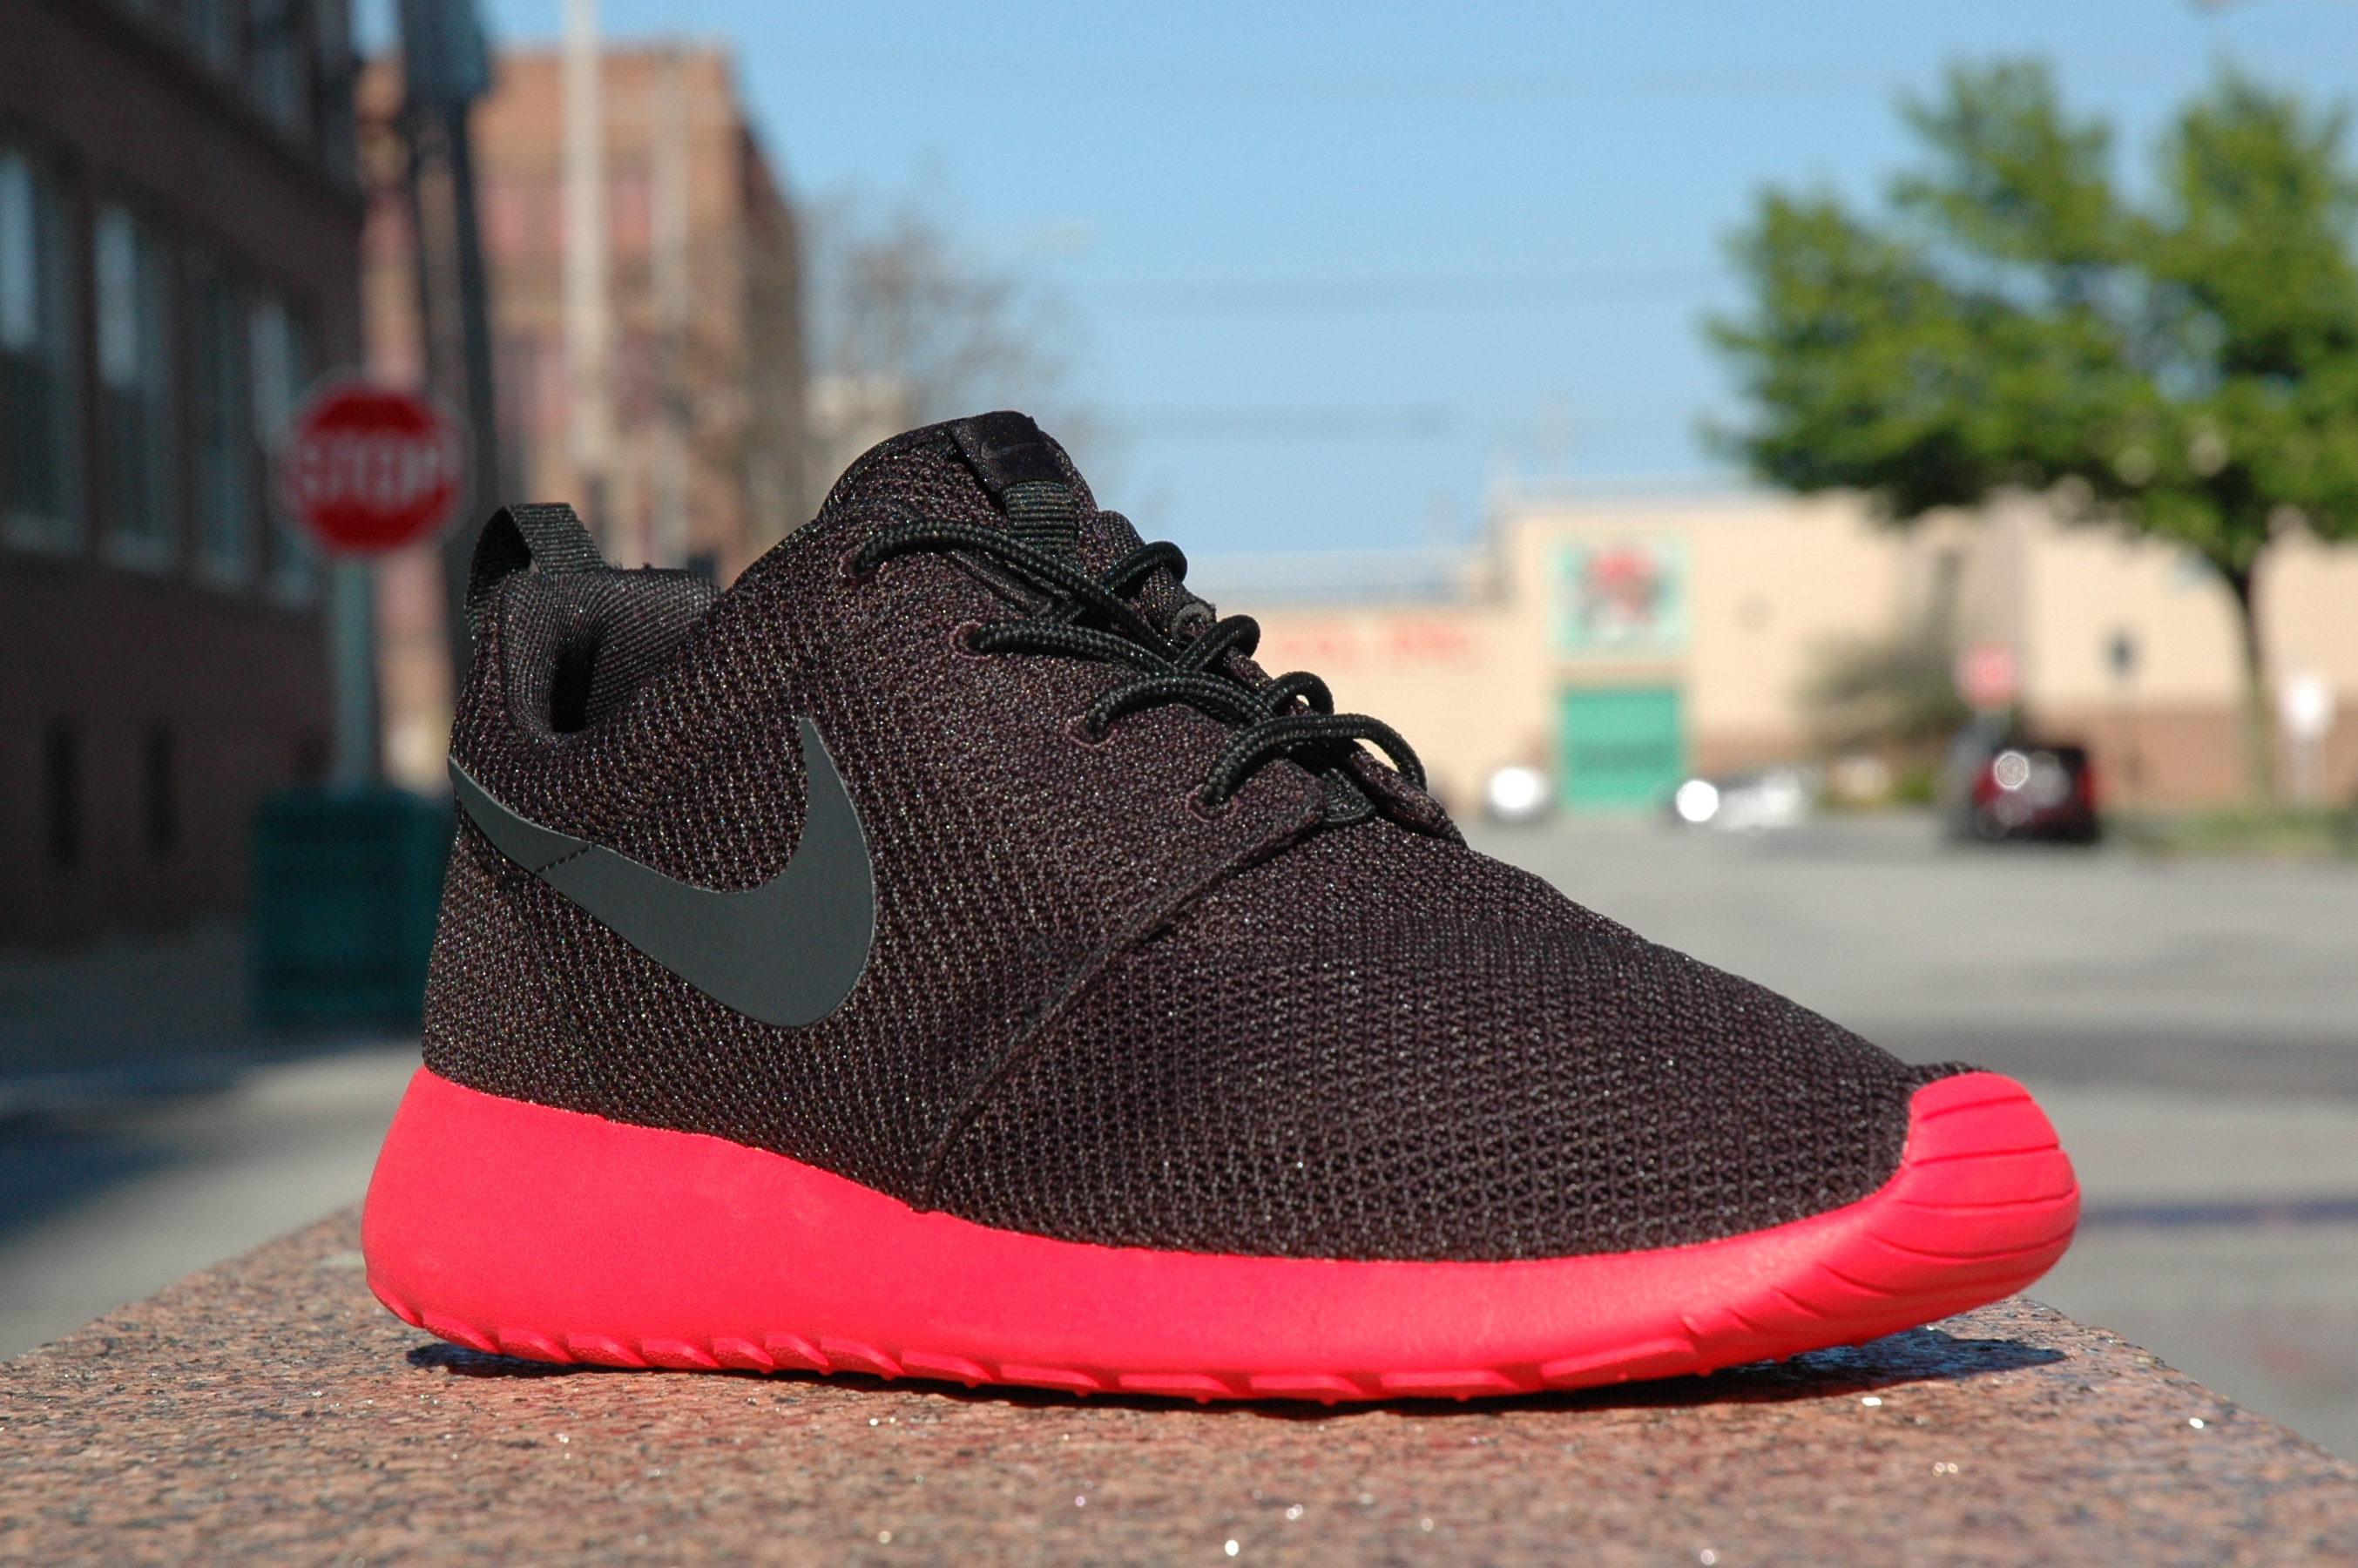 077366b00c58 Nike Roshe Run Hyperfuse – Atomic Red – Black. Graphic prints happen to be  getting to be a good deal far more frequent with Nike Sportswear footwear  choices ...